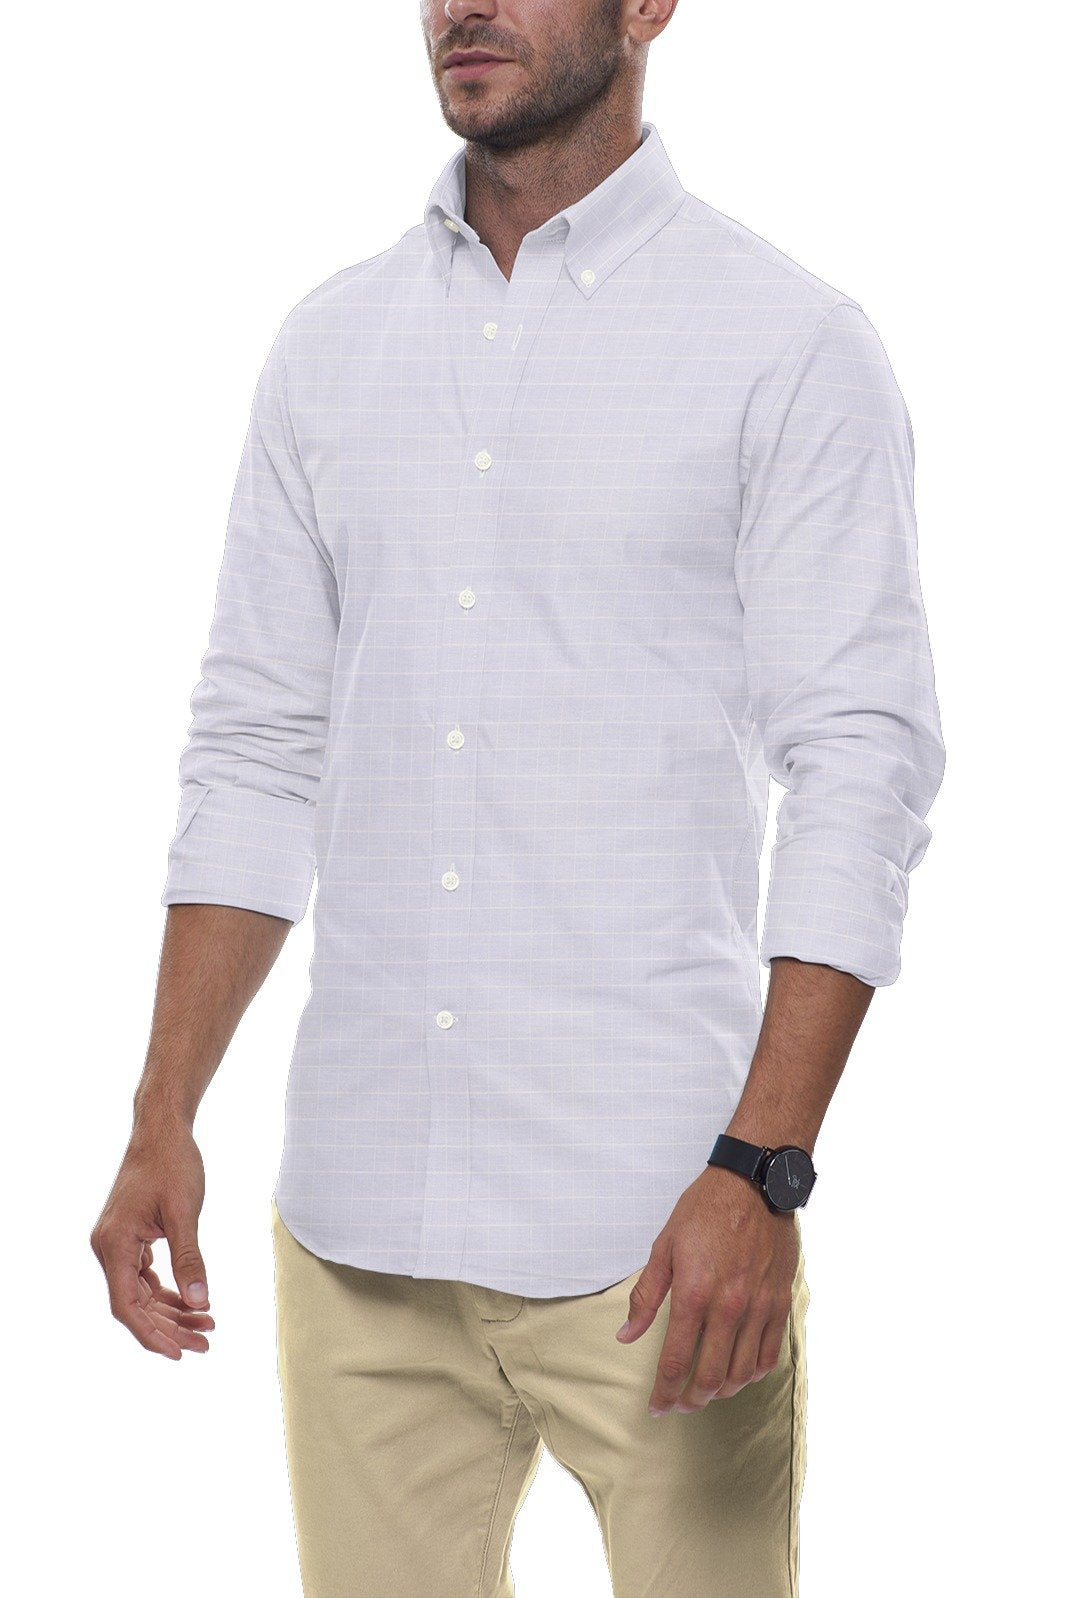 Powder Blue Grid Stripe Linen: Semi-Spread Collar, Long Sleeve